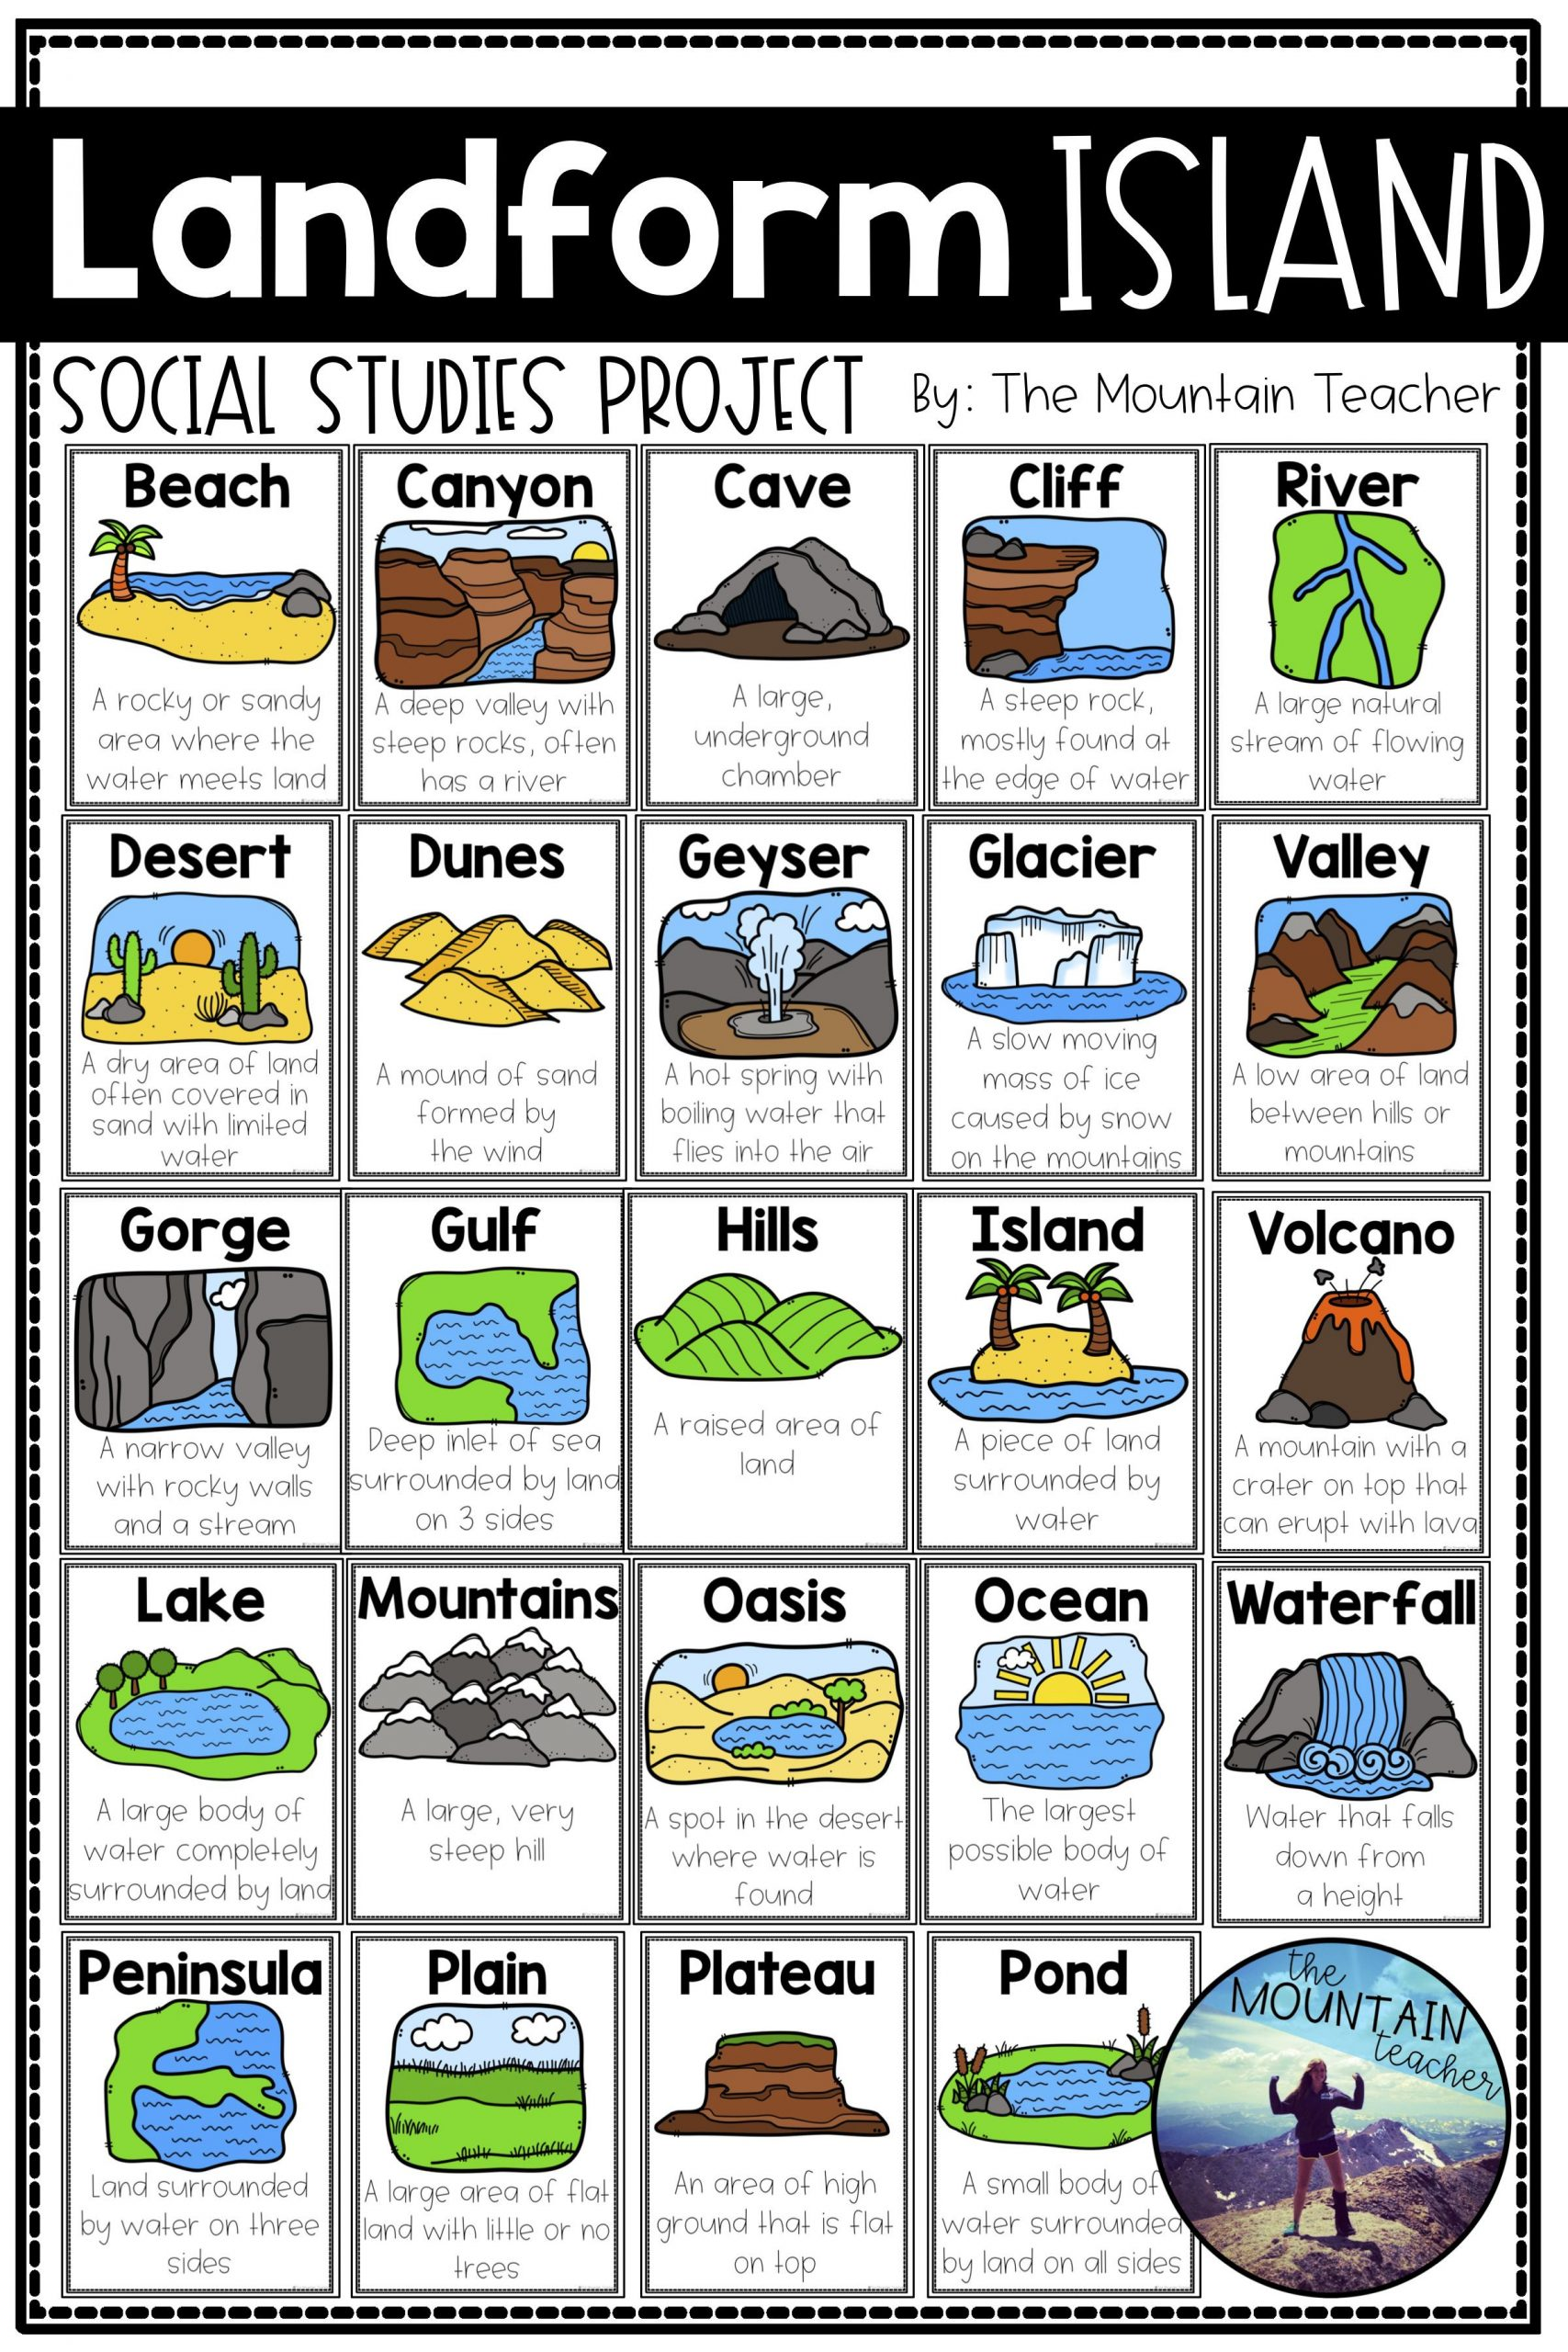 Landforms Worksheet Middle School Landform Project Landform island